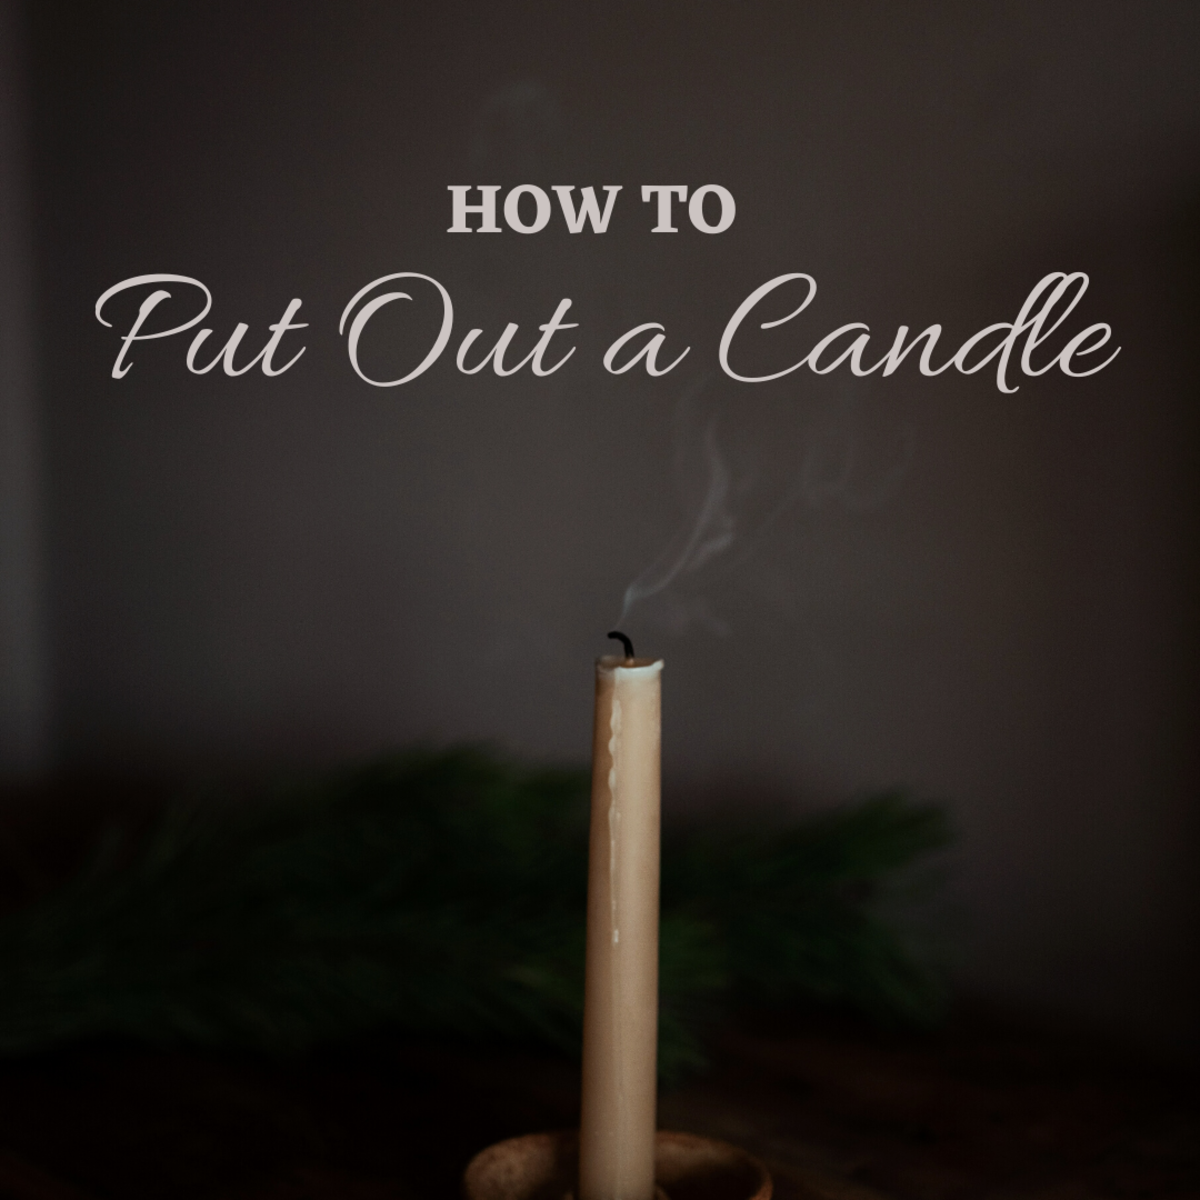 What are the best ways to put out a candle?